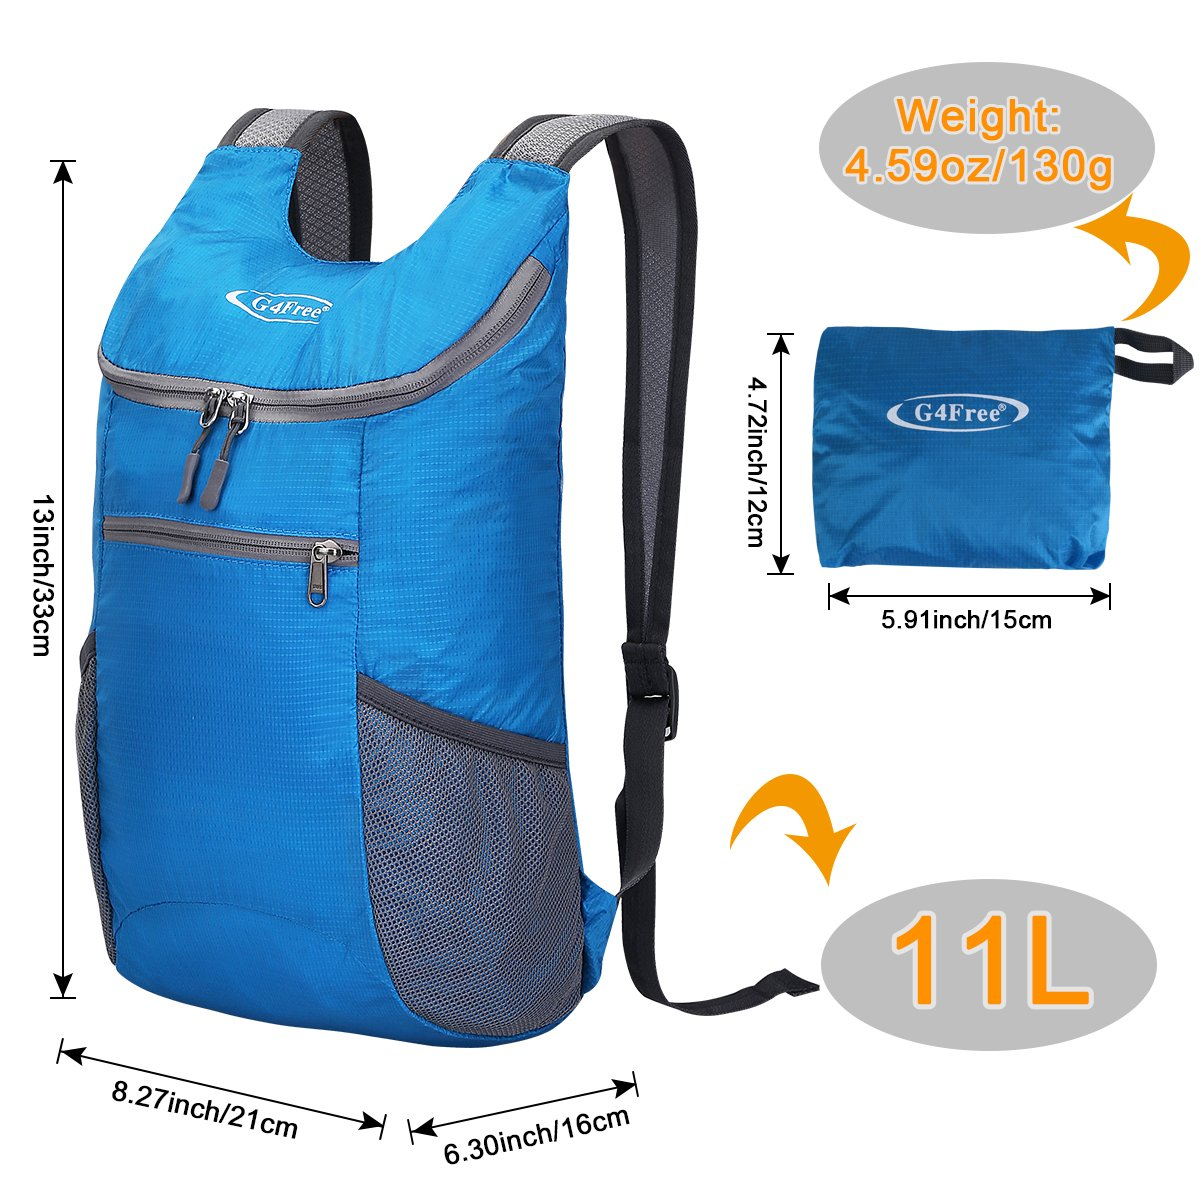 G4Free Lightweight Packable Shoulder Backpack Hiking Daypacks Small Casual Foldable Camping Outdoor Bag for Adults Kids 11L(Blue) by G4Free (Image #4)